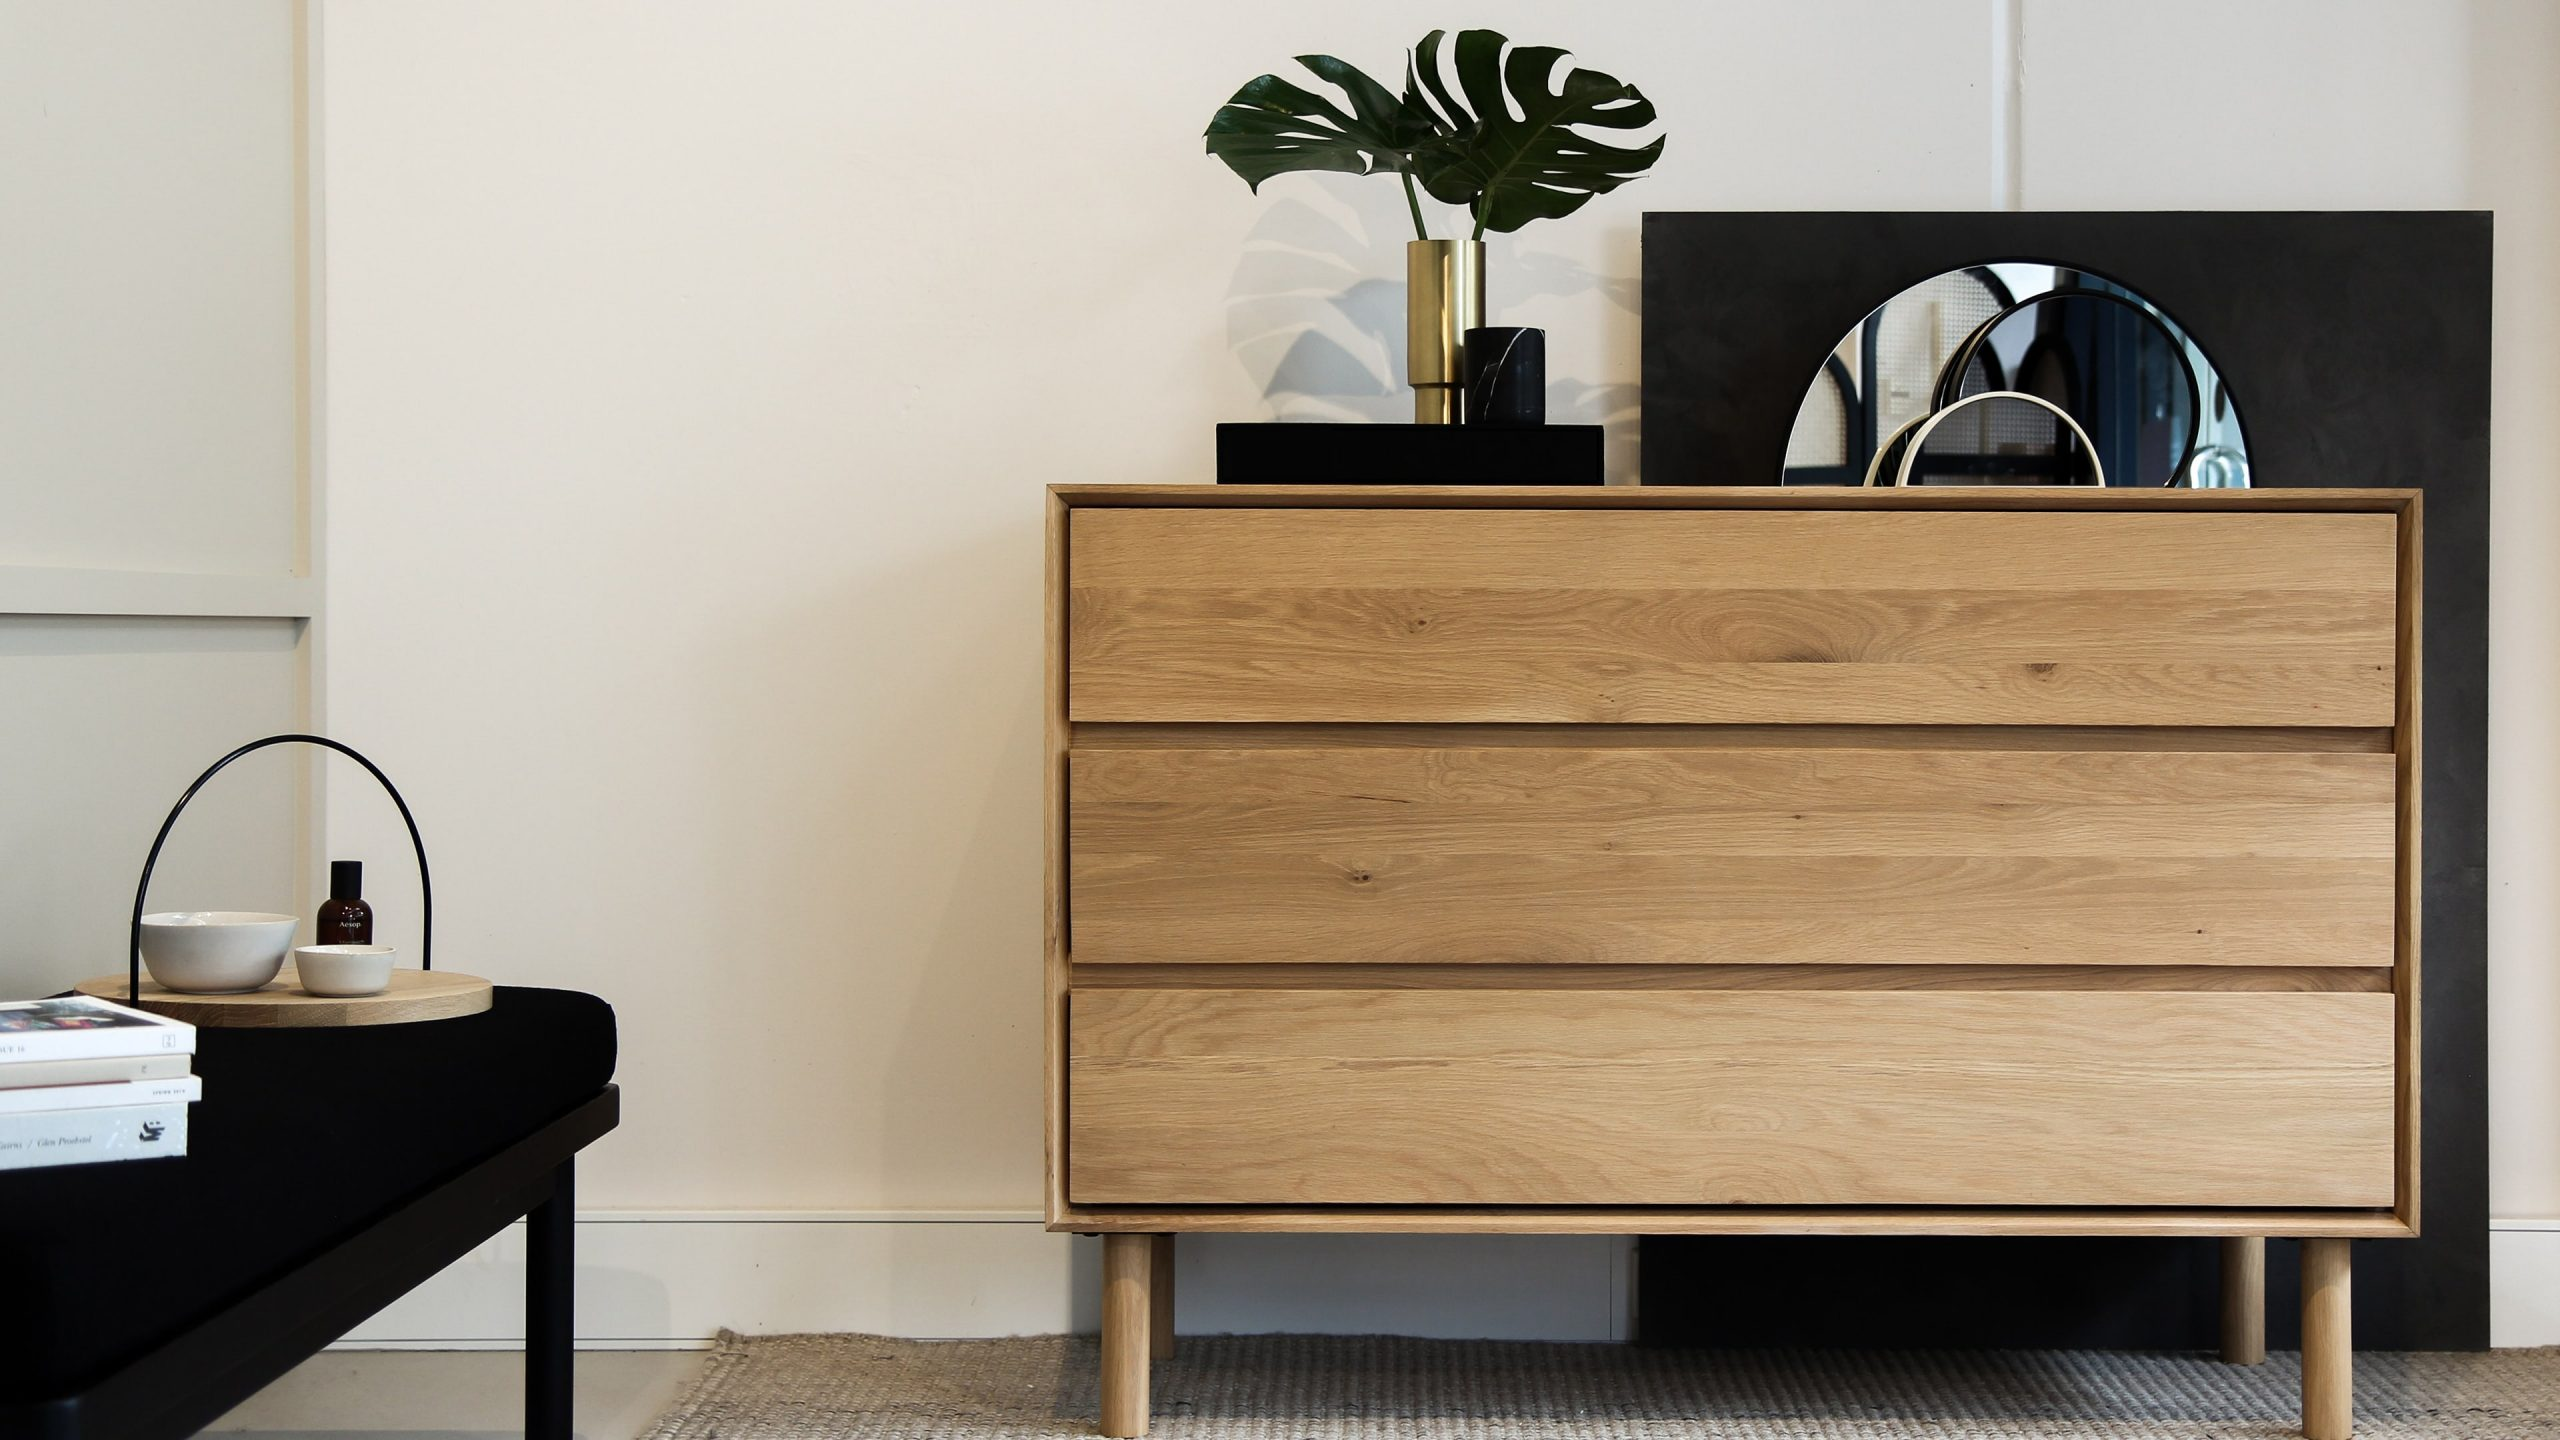 5 stunning Wooden Storage Cabinets to add extra storage in your home and declutter efficiently